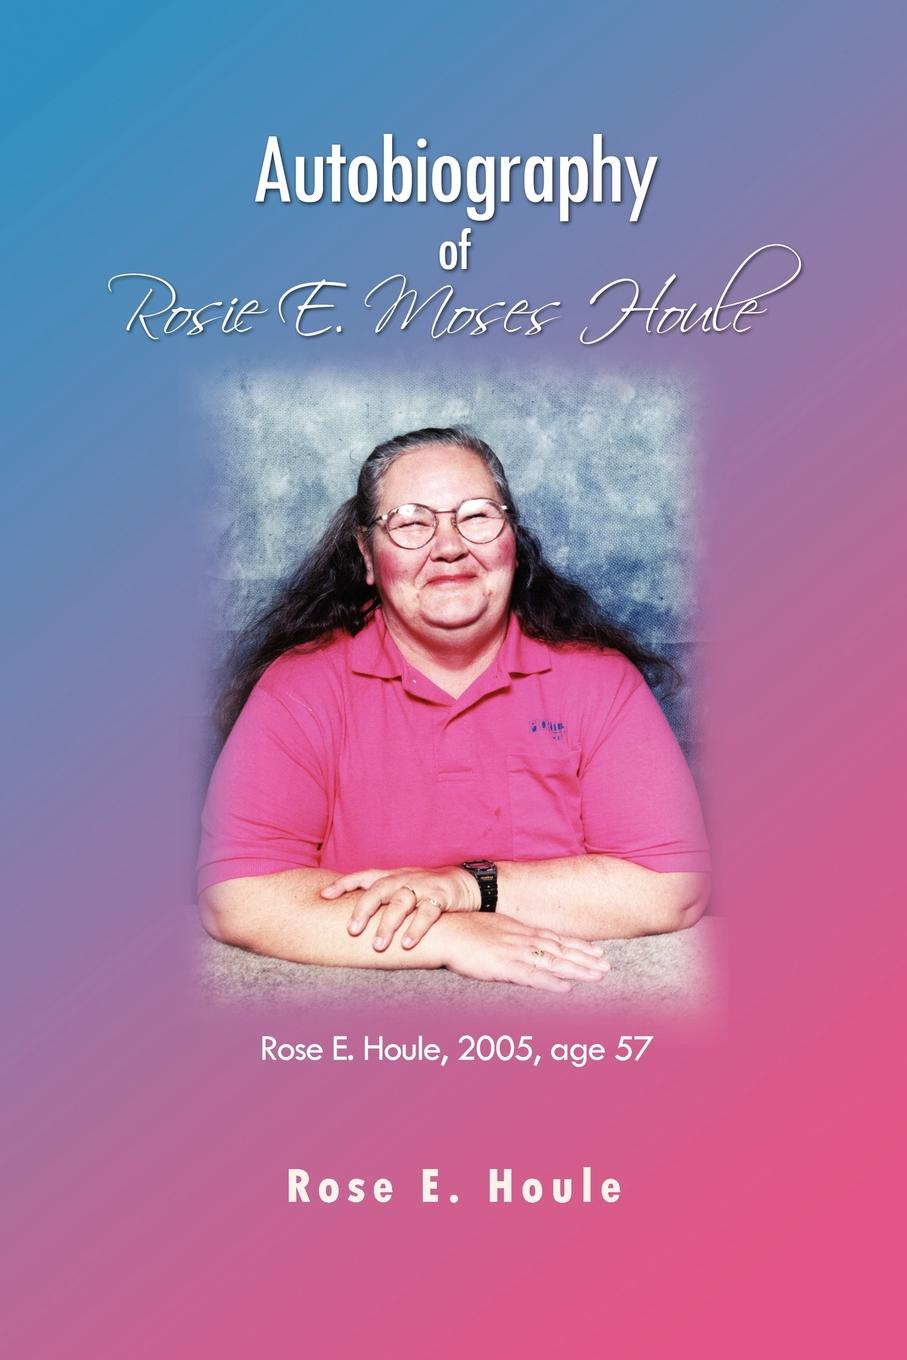 Rose E. Houle Autobiography of Rosie E. Moses Houle marc houle cola party